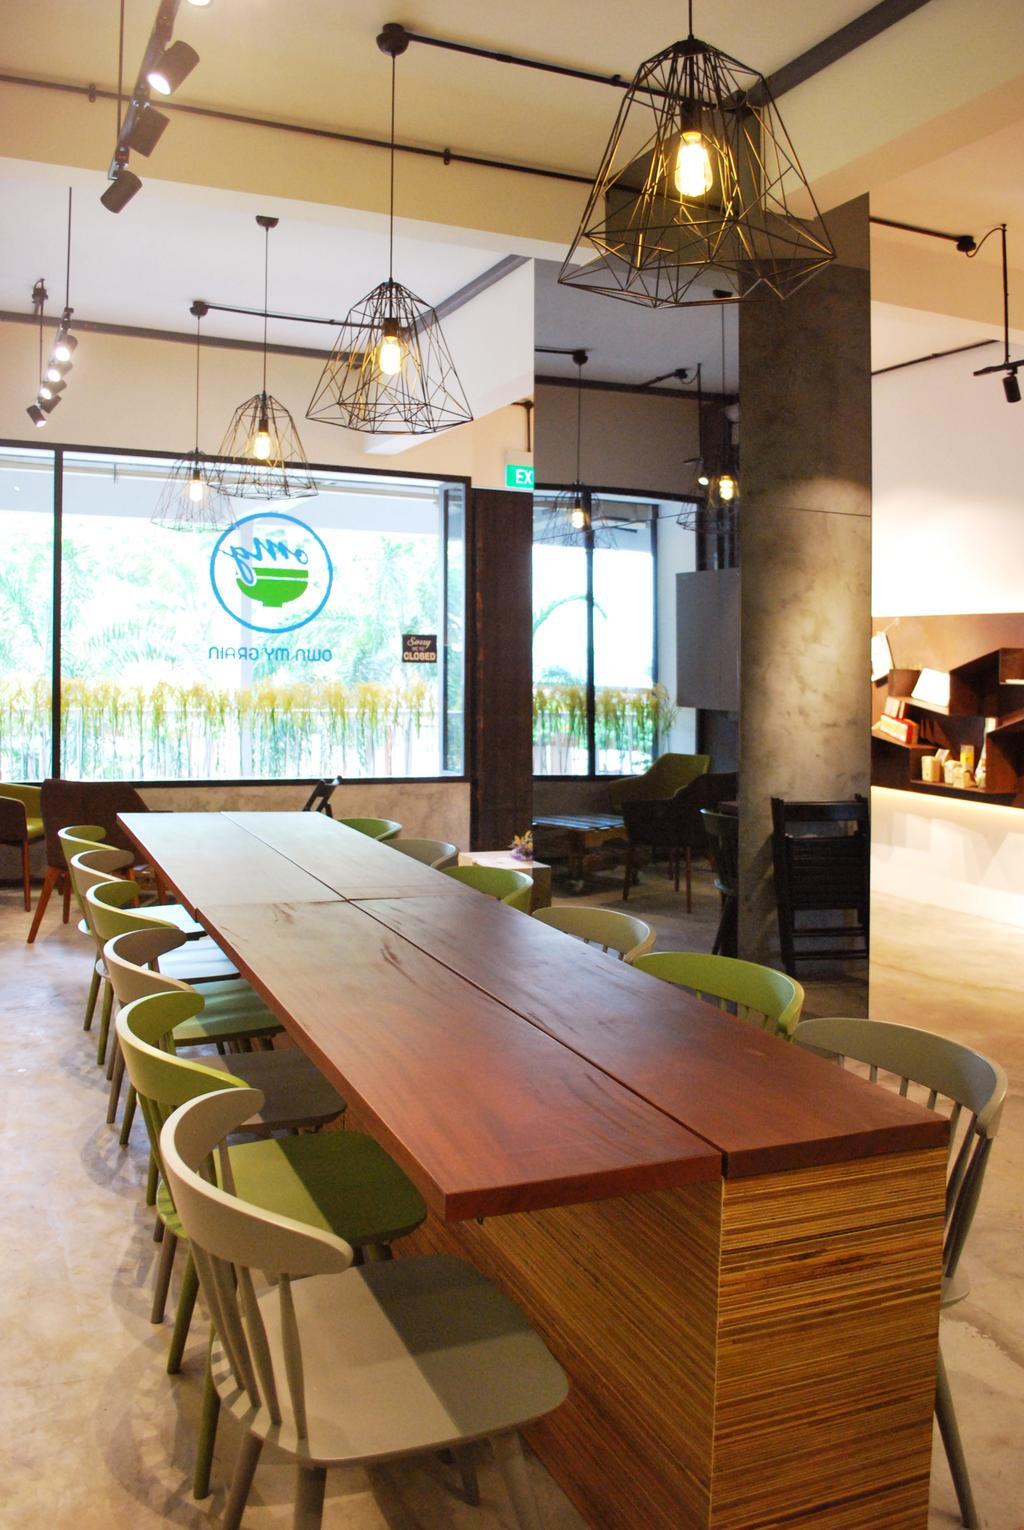 OMG, Commercial, Architect, Czarl Architects, Contemporary, Conference Room, Indoors, Meeting Room, Room, Dining Table, Furniture, Table, Plywood, Wood, HDB, Building, Housing, Loft, Appliance, Electrical Device, Oven